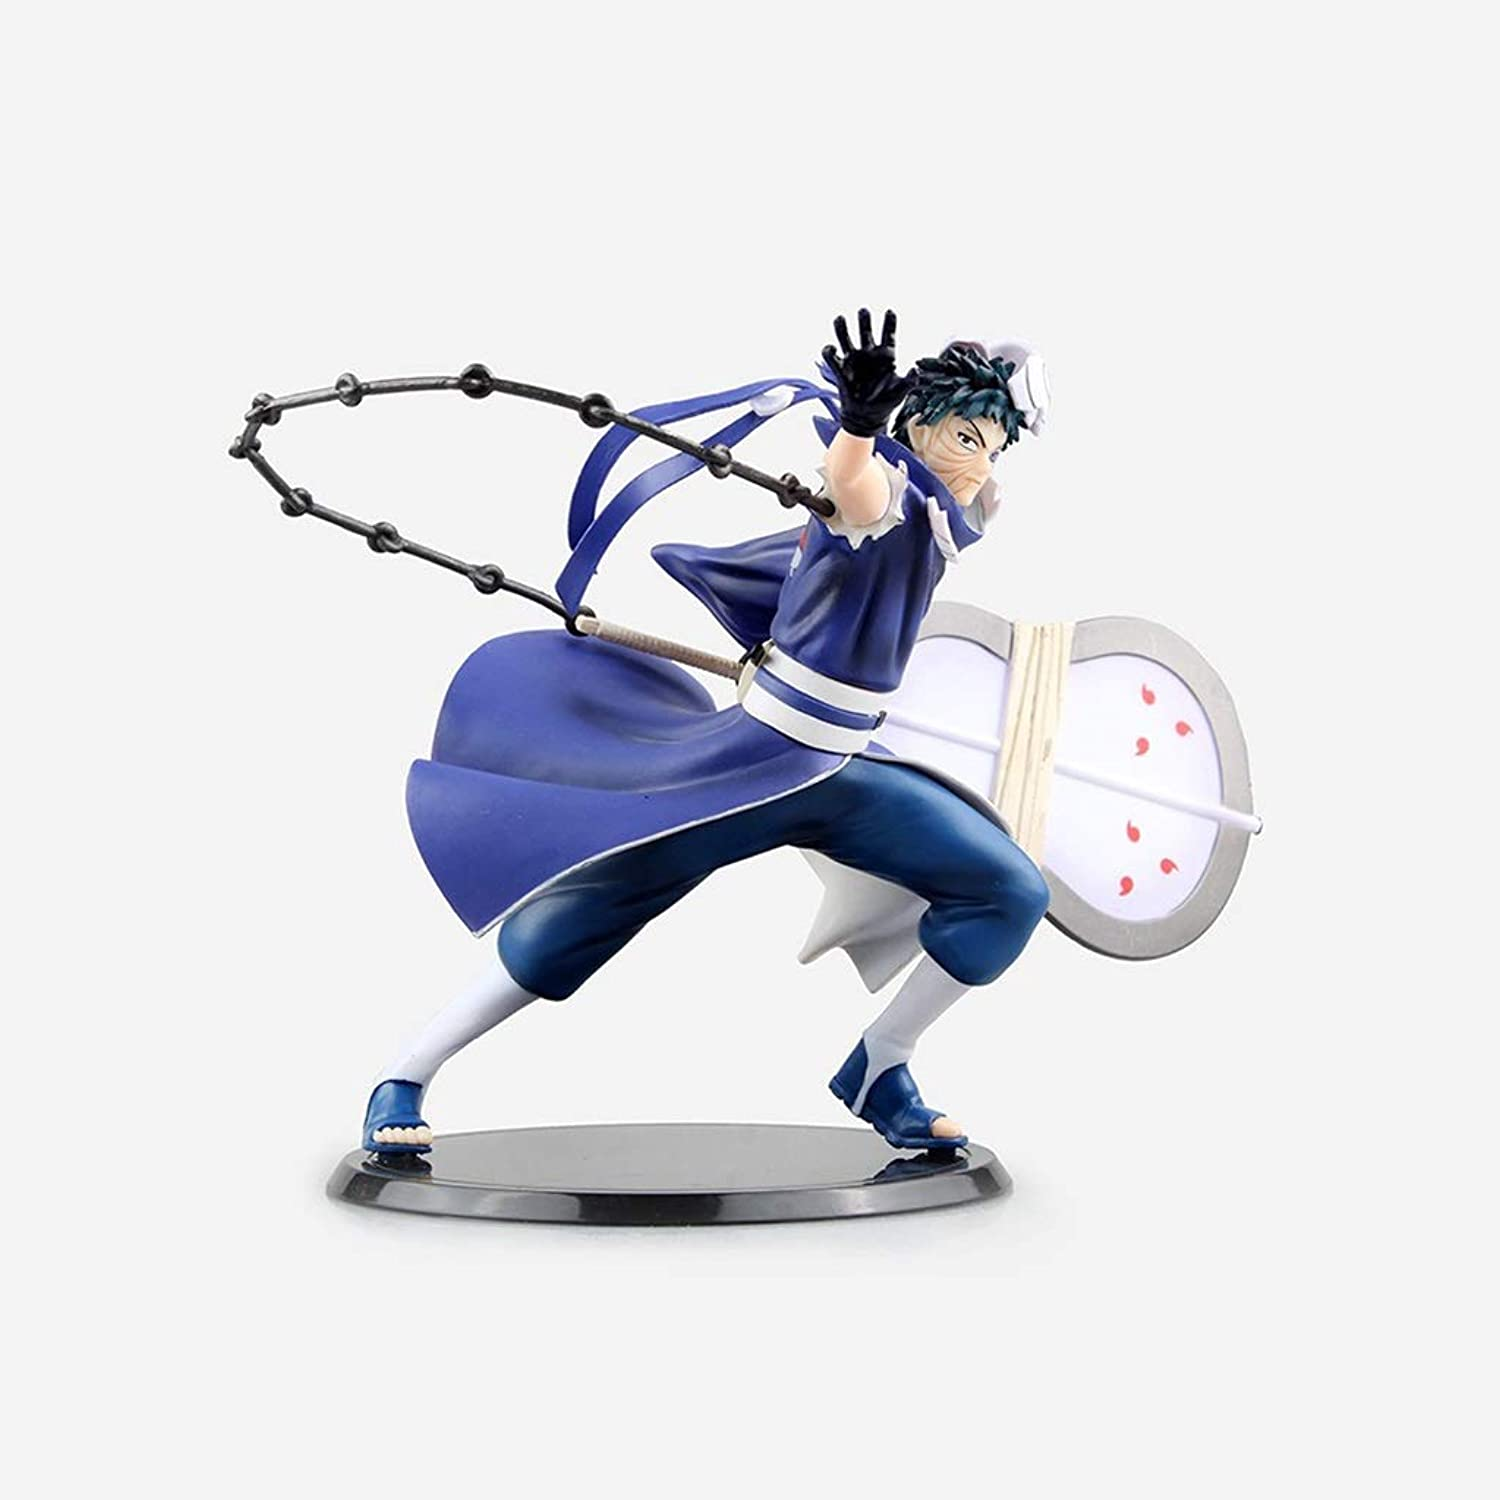 IUYWL Anime Classic Scene Toy Model Figure Statue Home Decoration Height 18cm Toy model